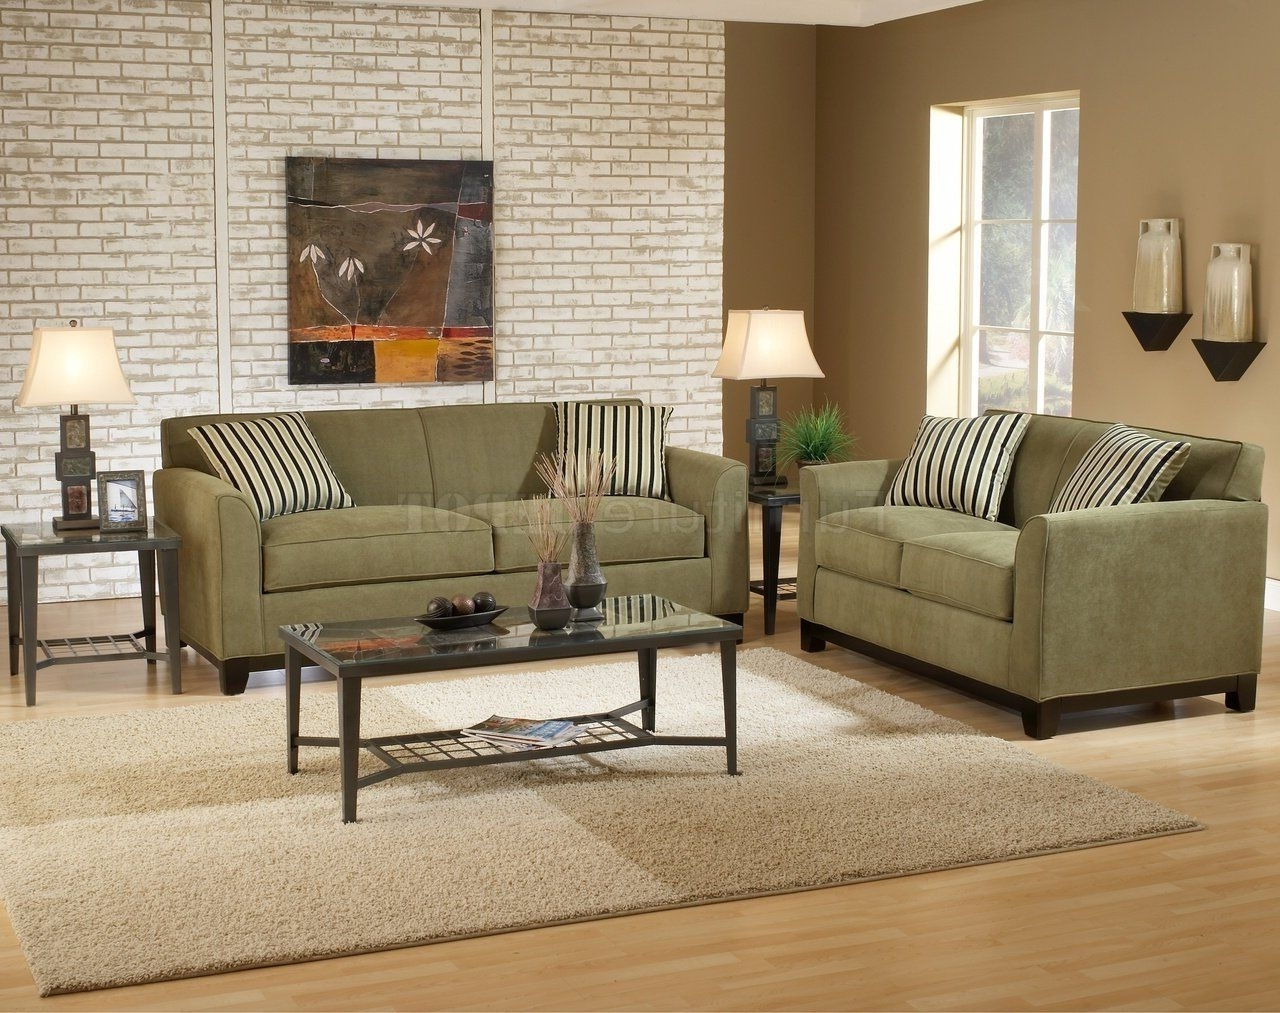 Wall Color For Sage Green Couch (View 17 of 20)